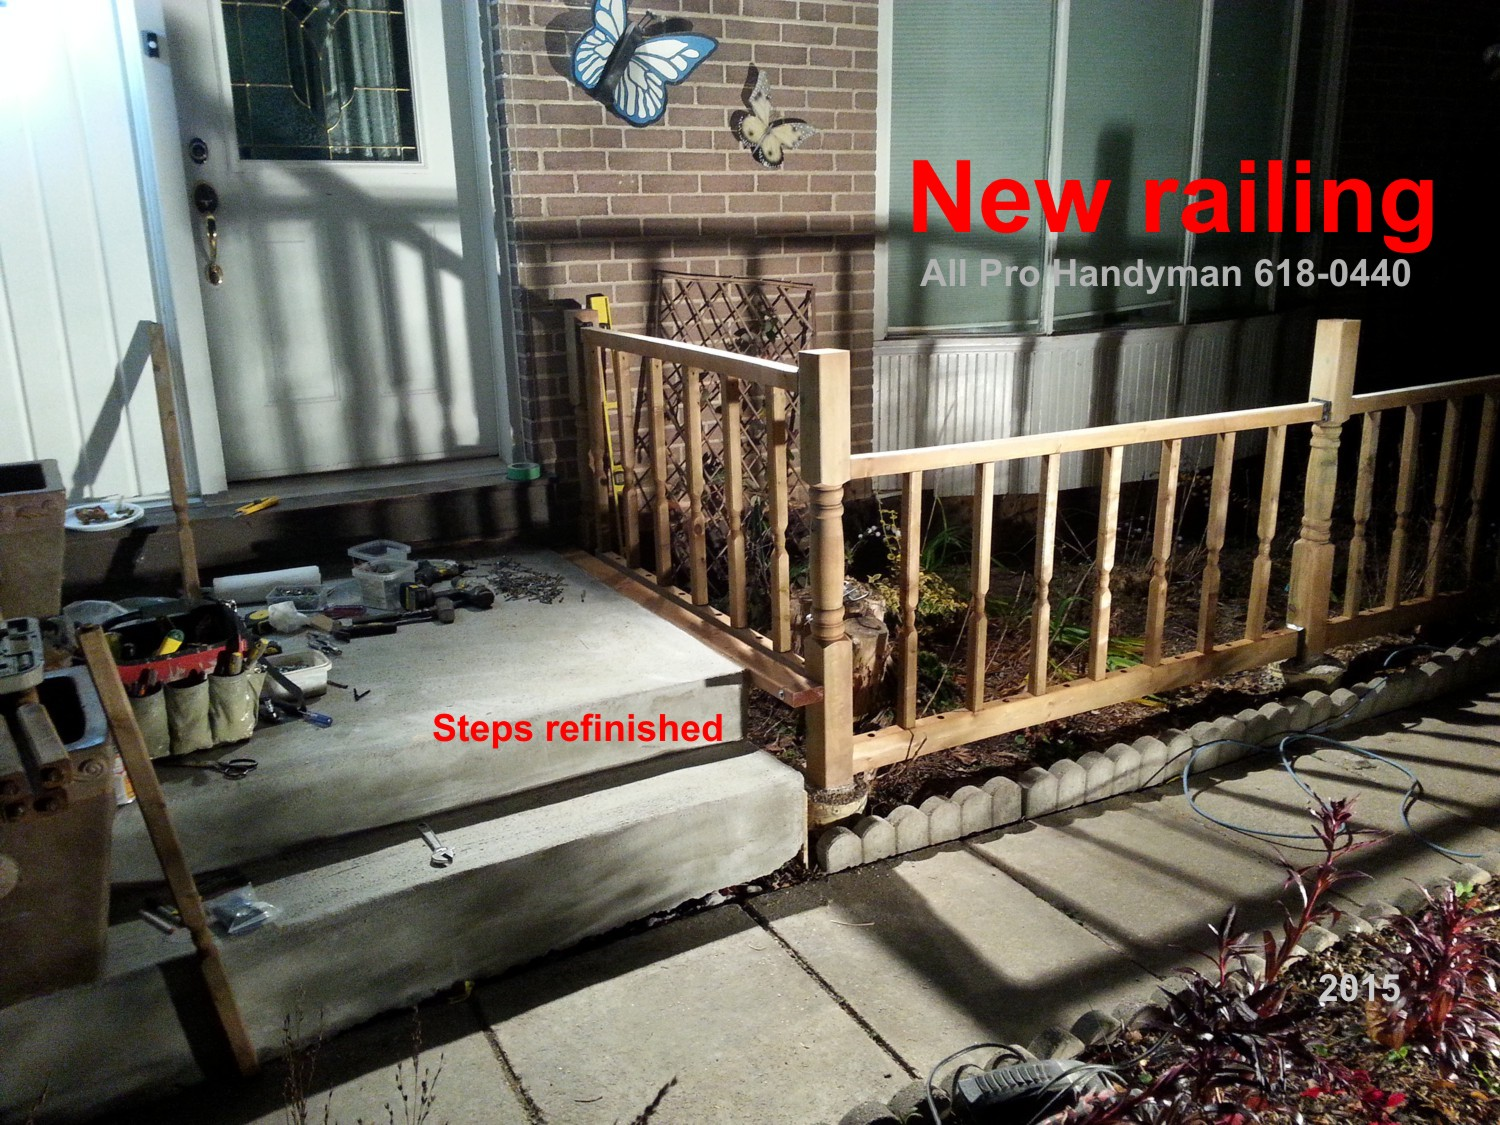 New railing, refinish steps